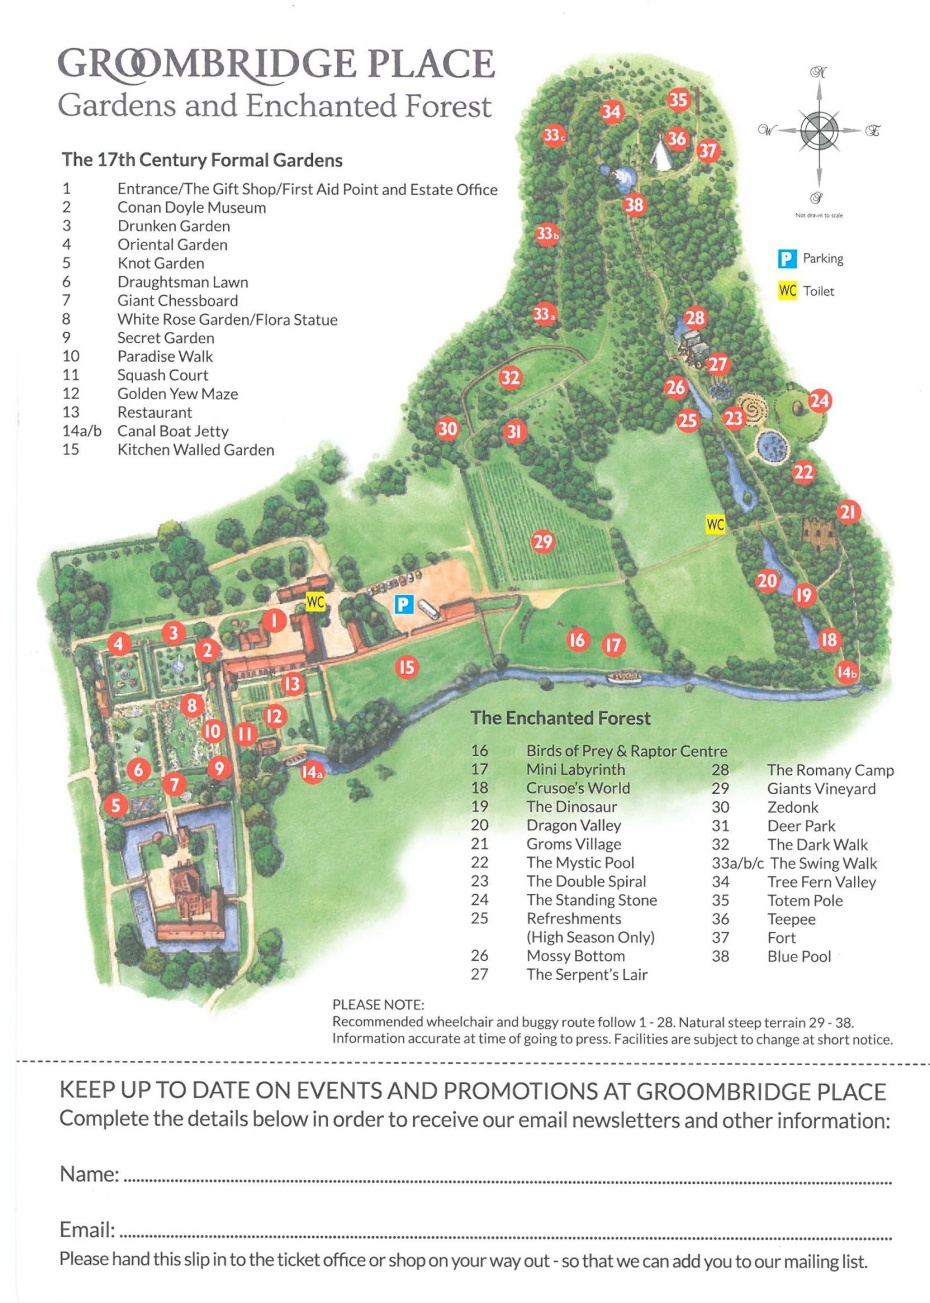 Map of the grounds at Groombridge Place